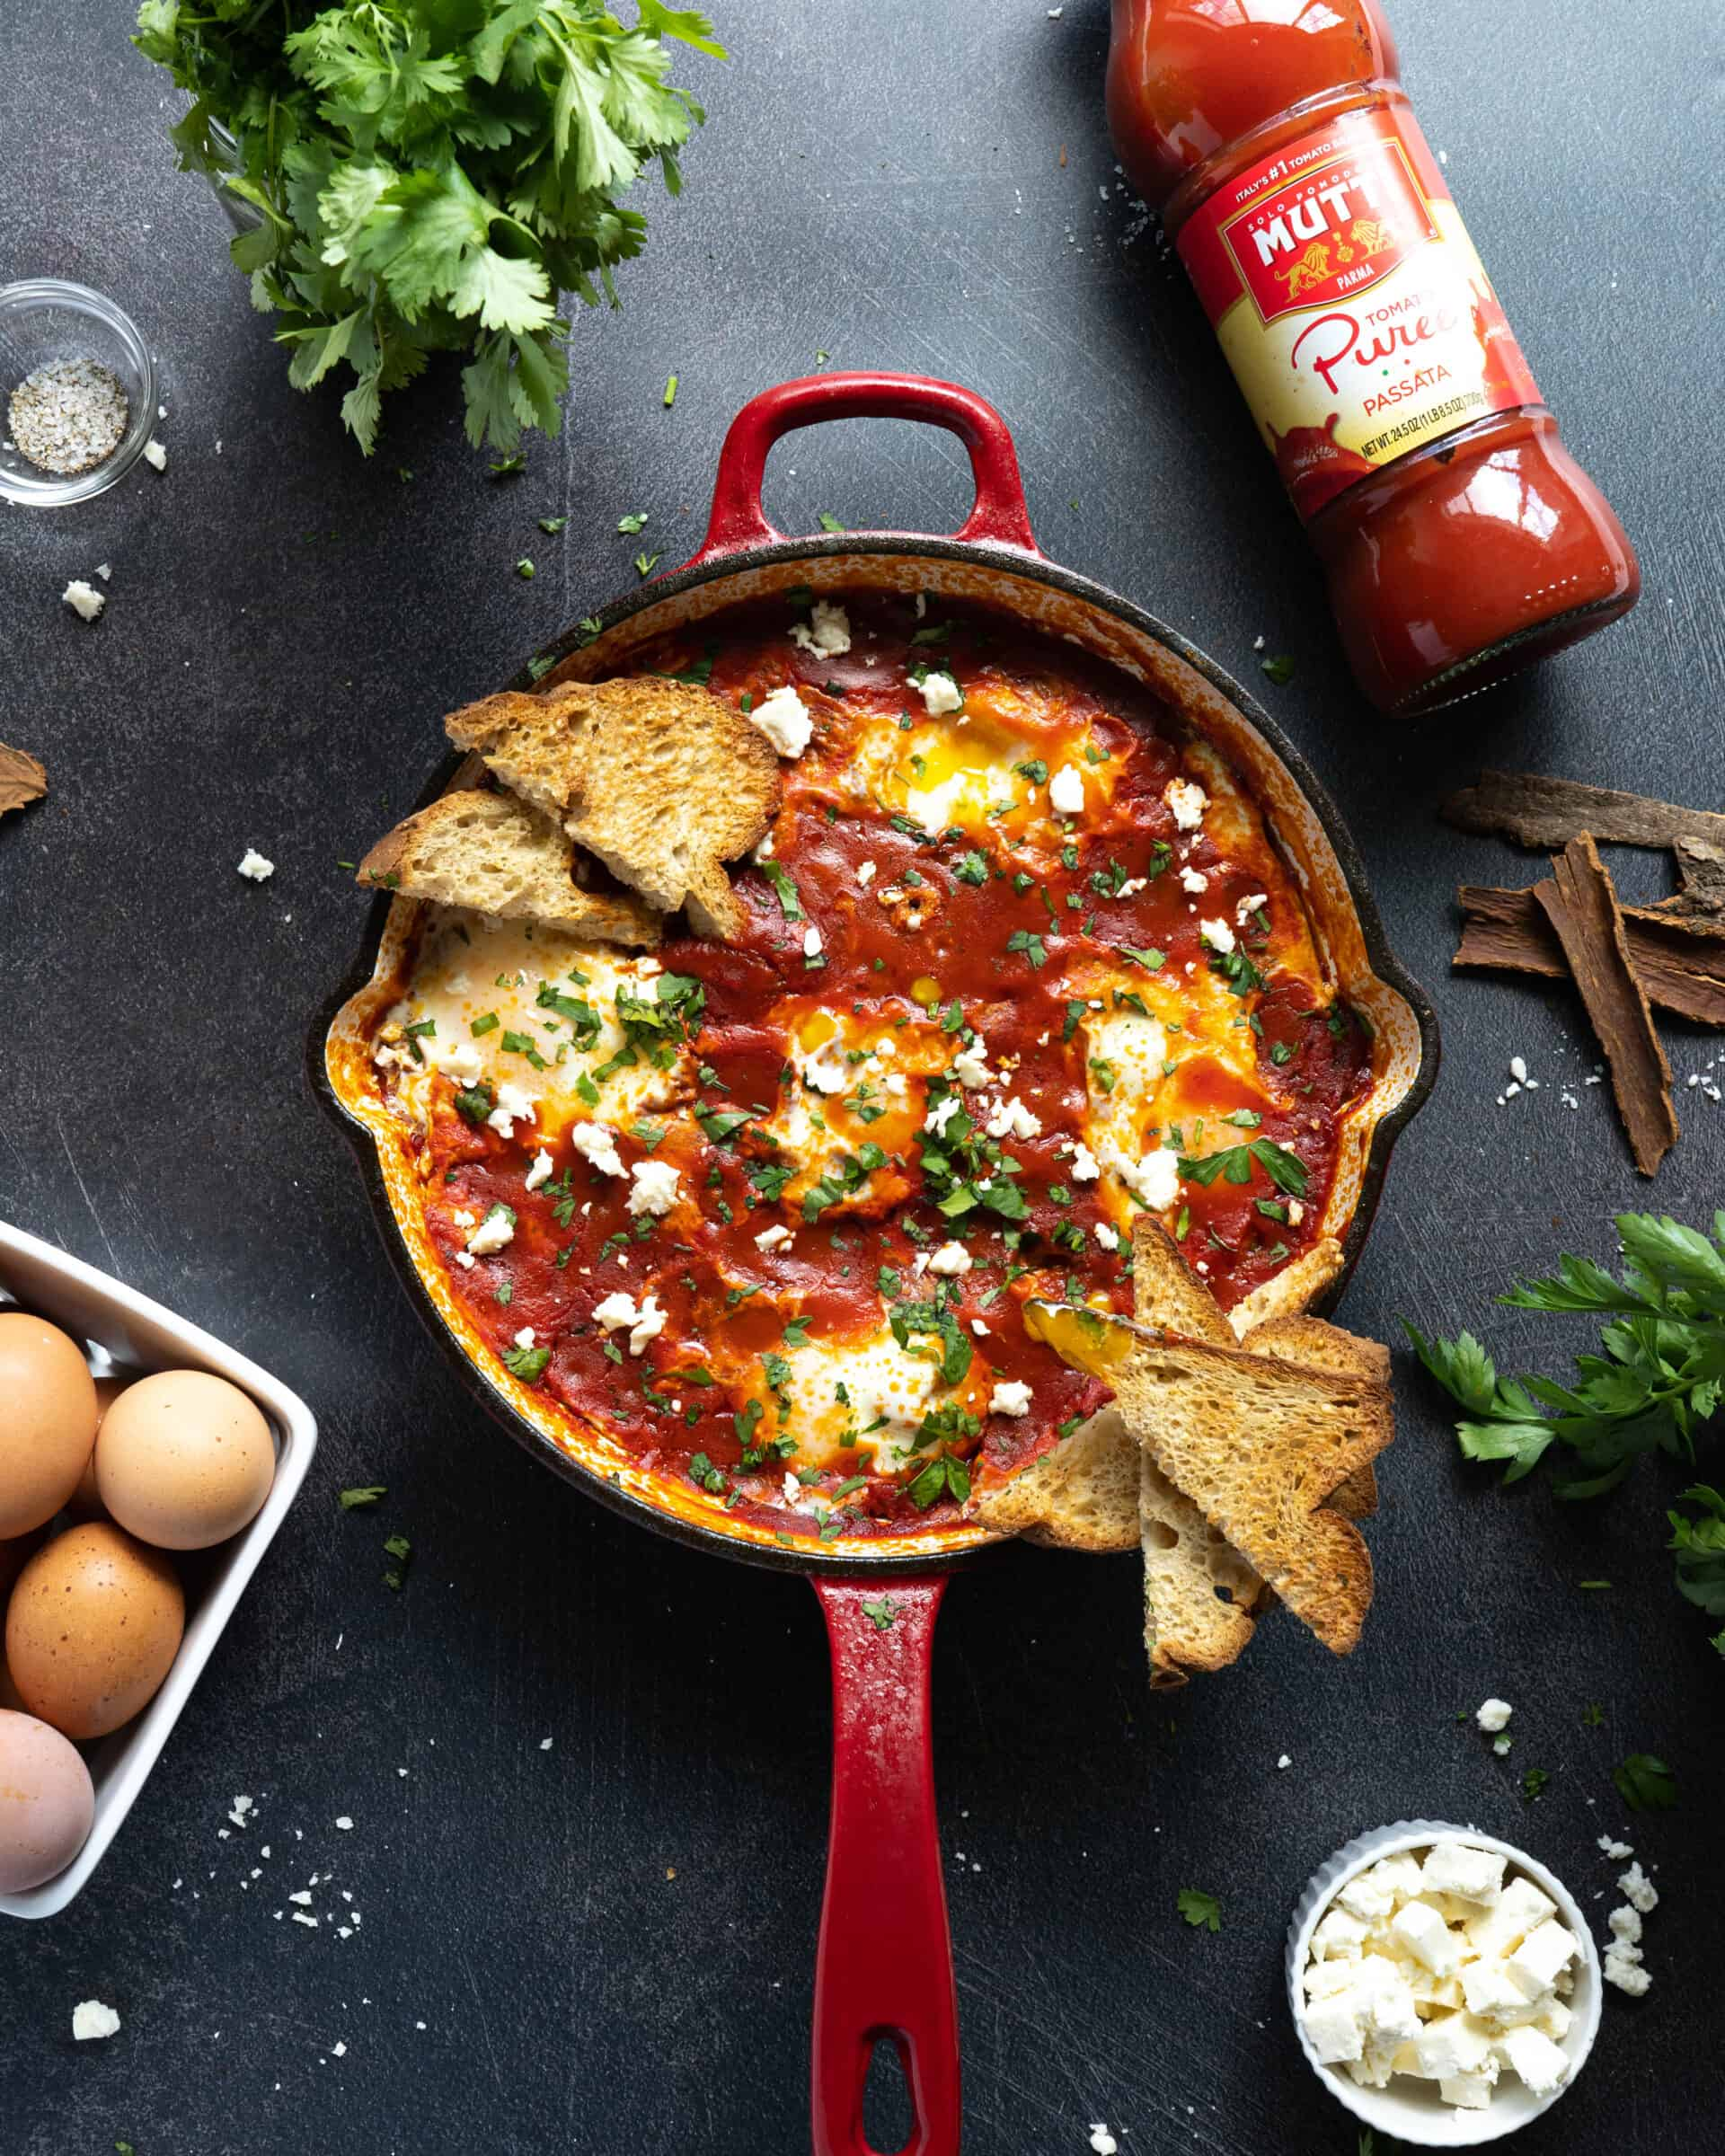 A pan of Moroccan shakshuka with slices of toast and meatballs.